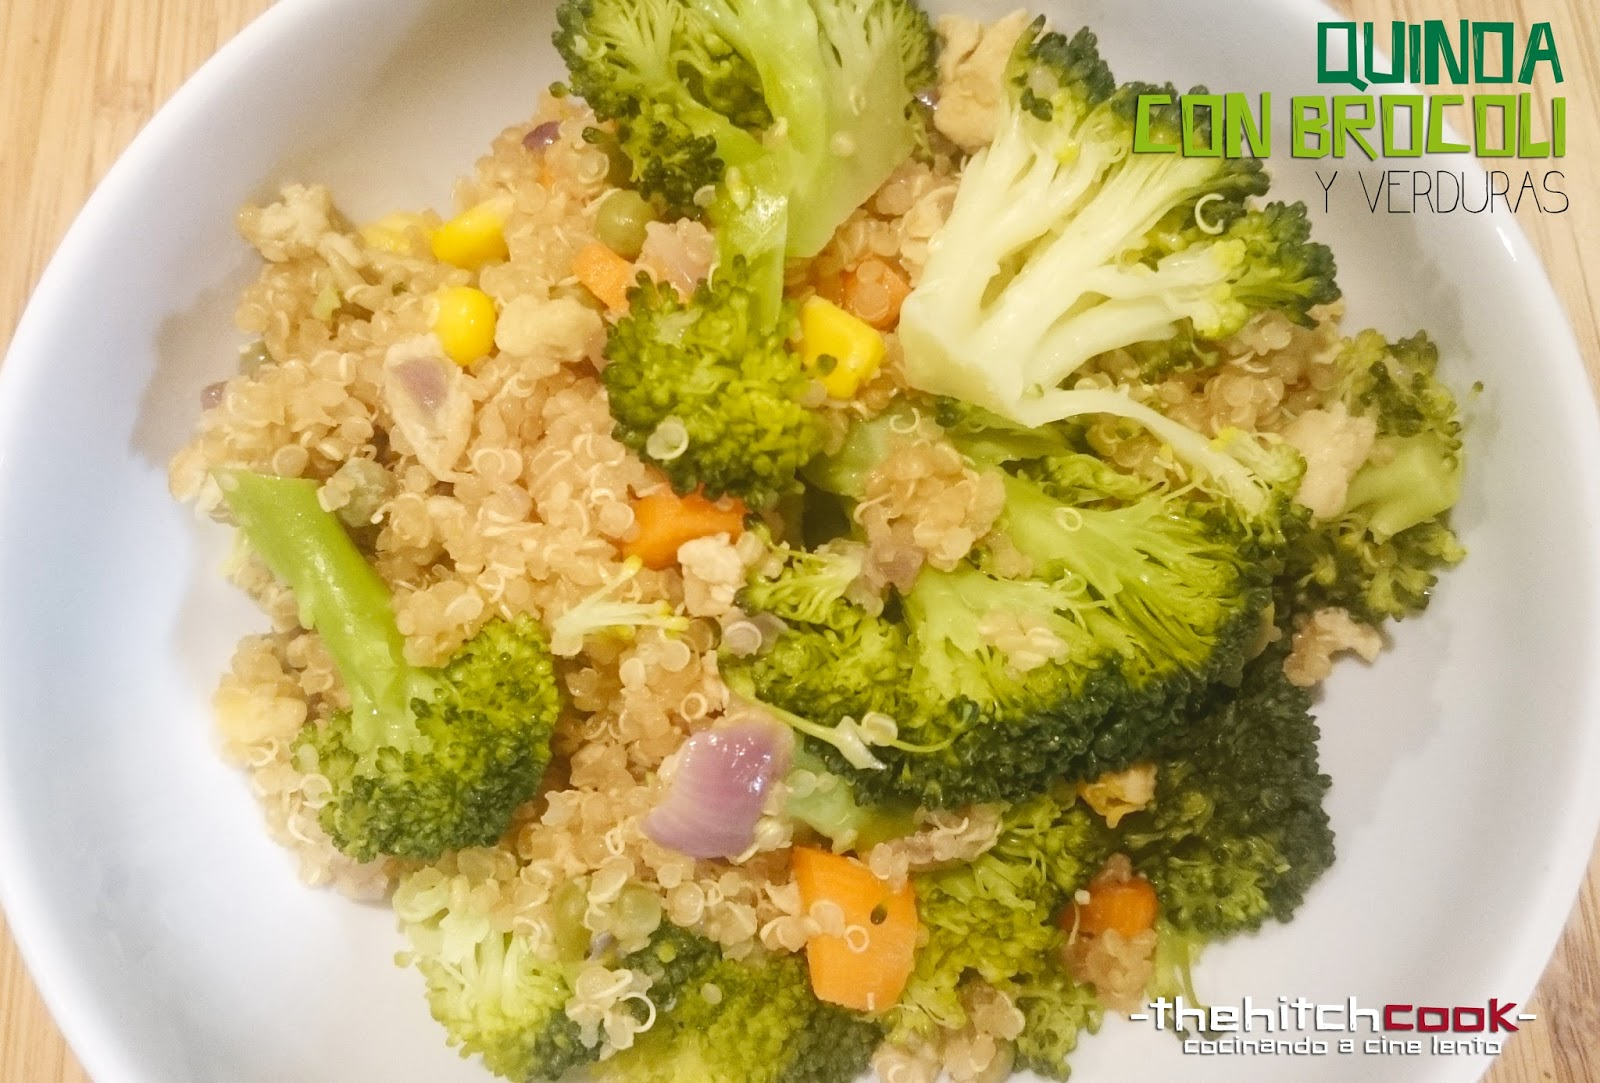 The hitchcook quinoa con brocoli y verduras cenas for Cena de verduras